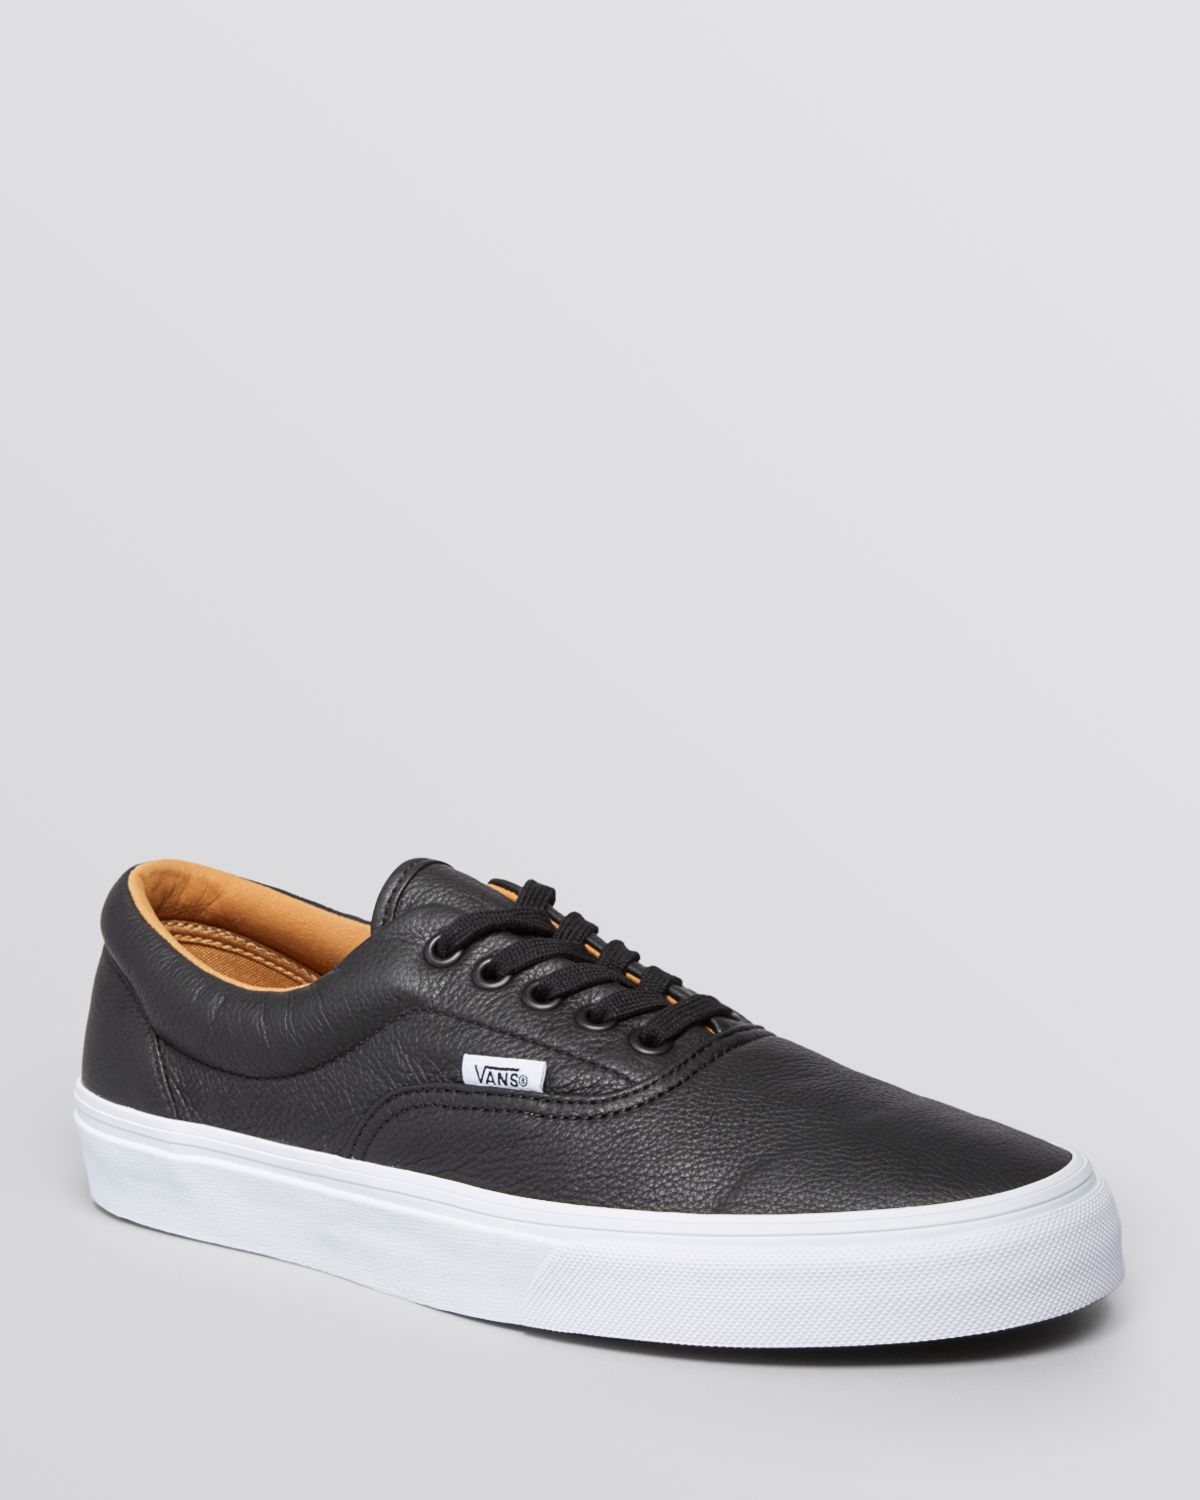 fc2ee90cee6 Up Premium Vans Men Sneakers Lyst Era Leather In Black For Lace XwCTqEqx4B